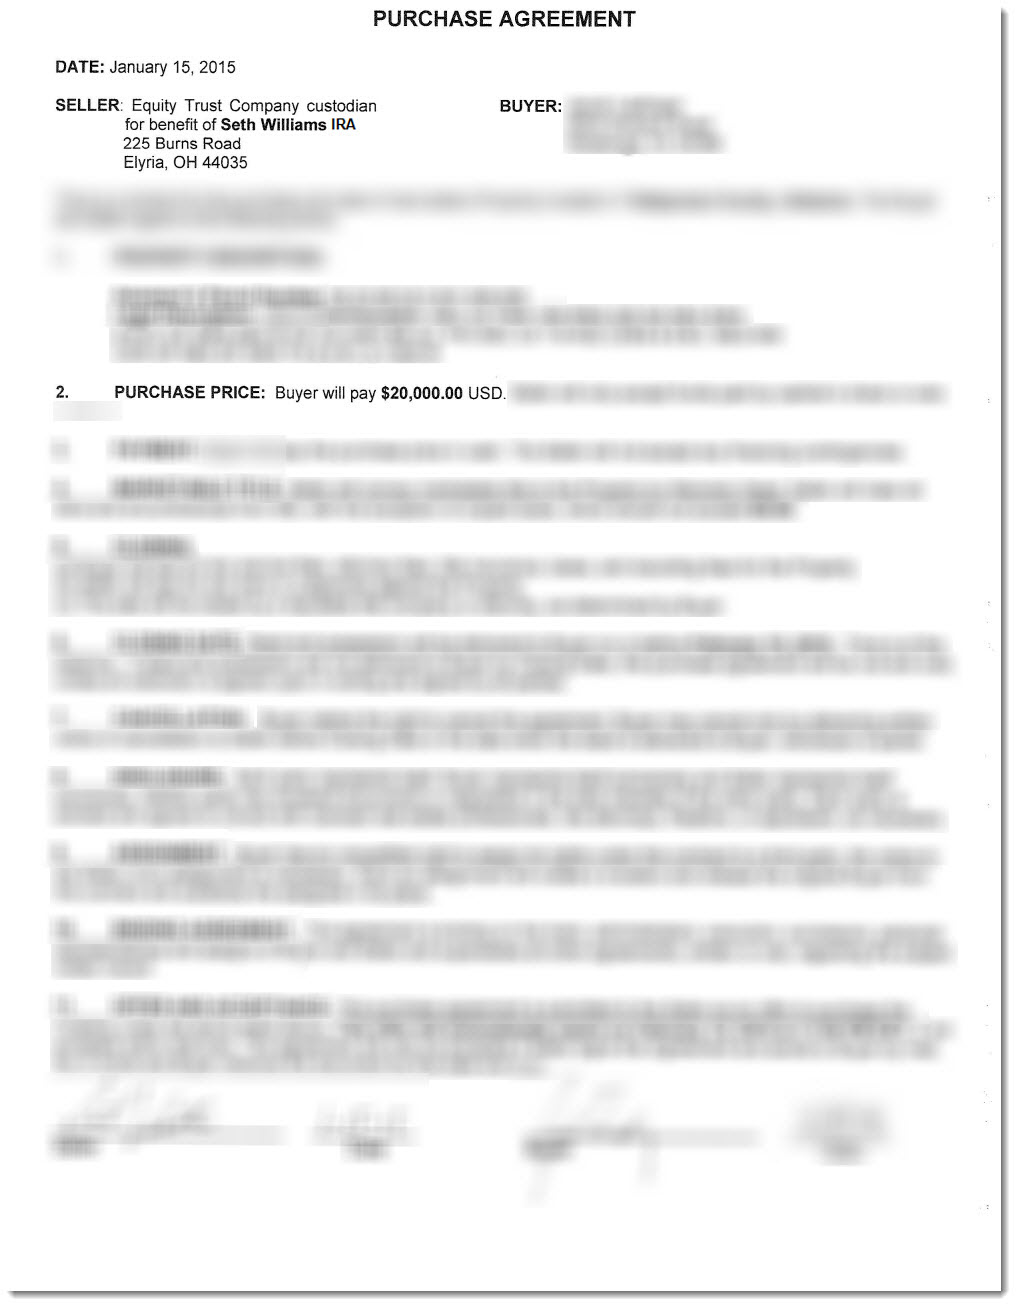 Purchase-Agreement1